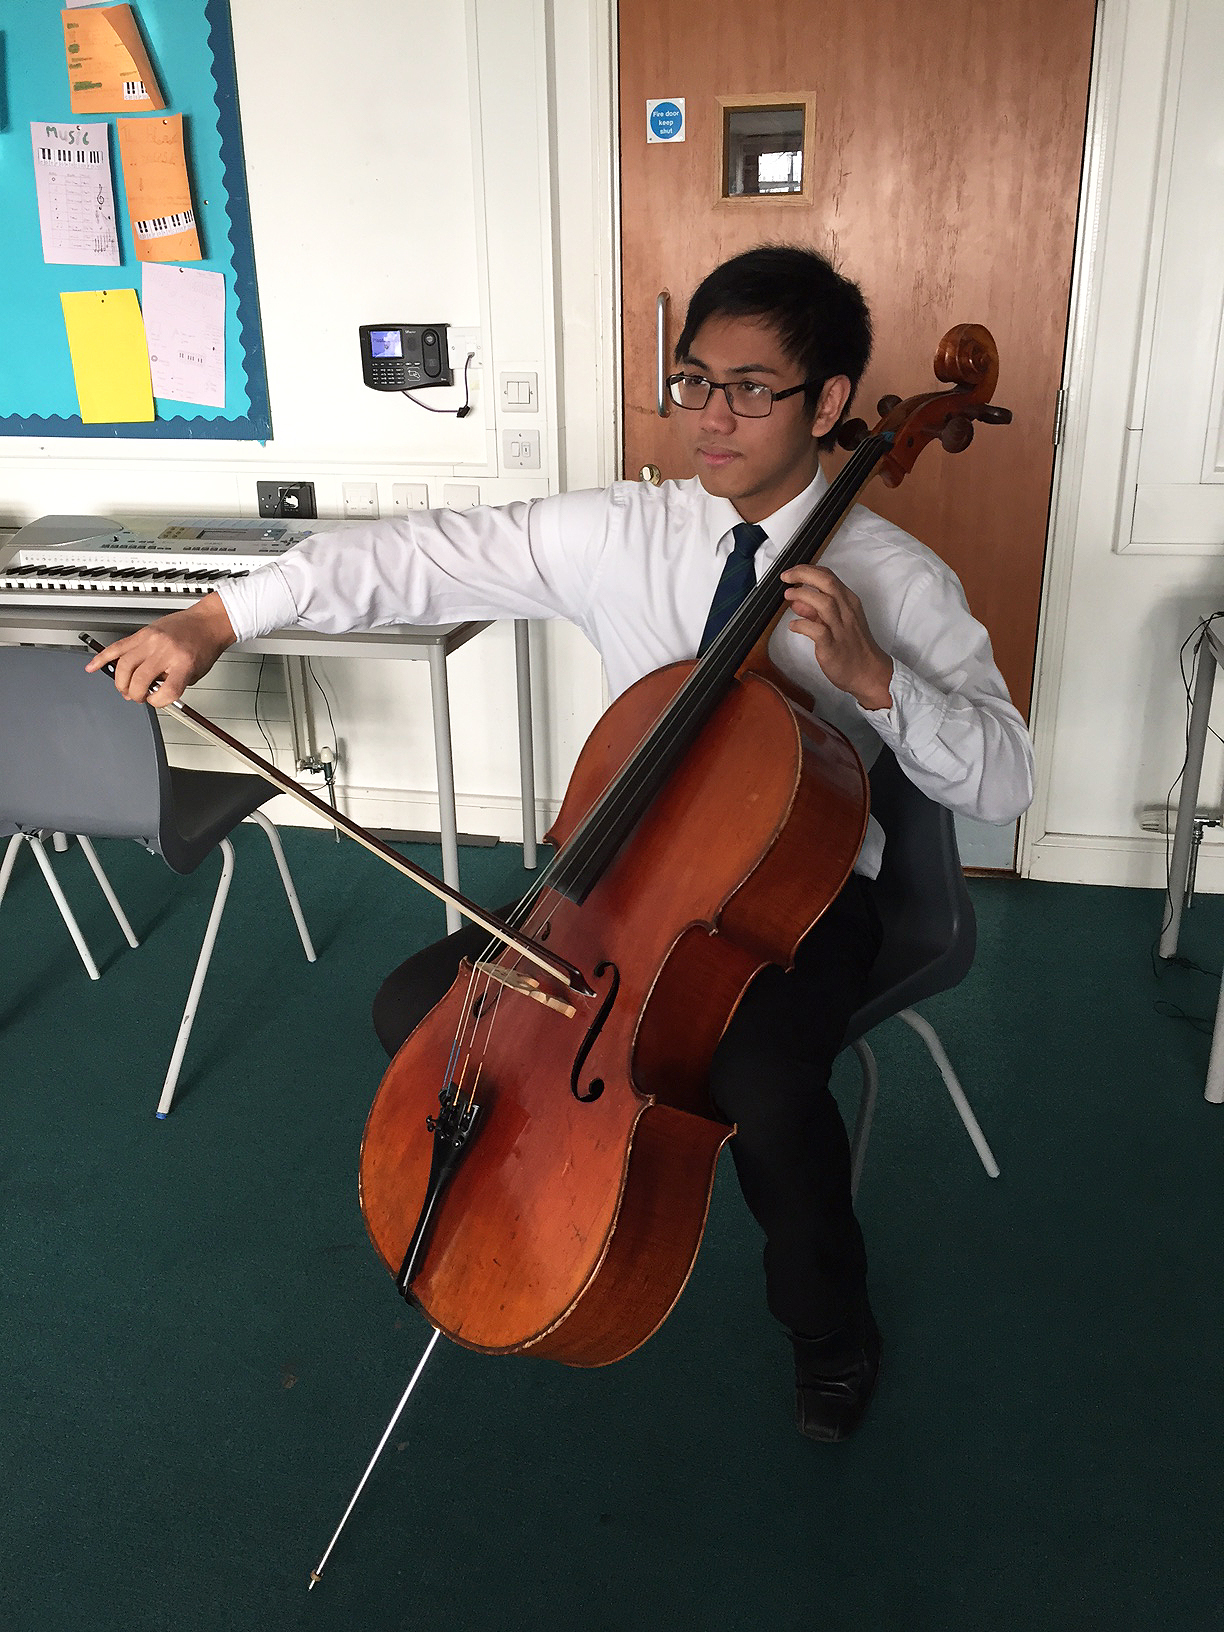 old Danilo Dela Cruz, from Enfield, cannot believe his luck at winning the chance to play his cello in the Enfield Chamber Orchestra's Concert this Saturday